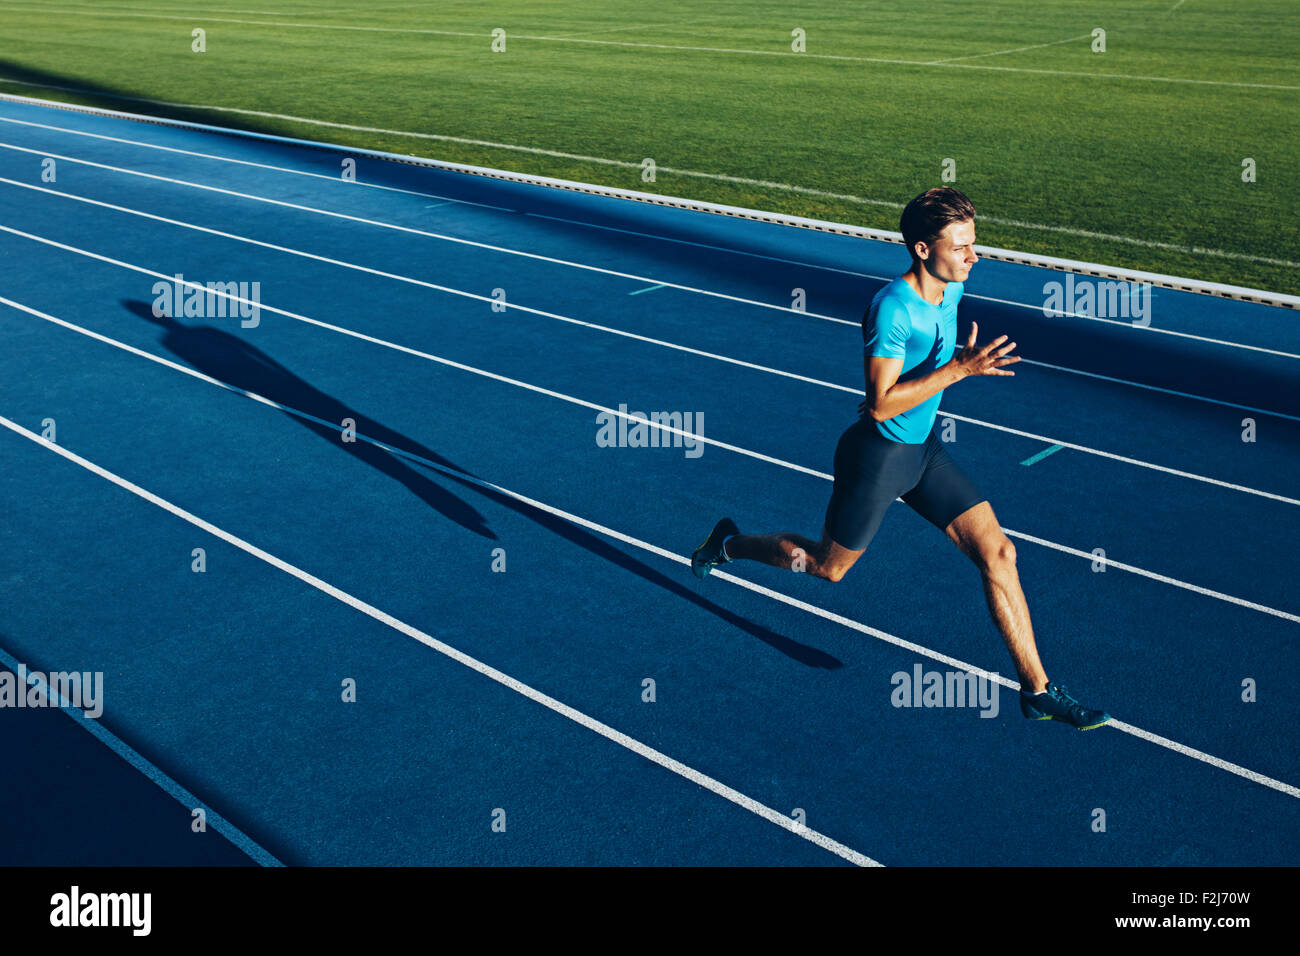 Shot of a young male athlete training on a race track. Sprinter running on athletics tracks. - Stock Image